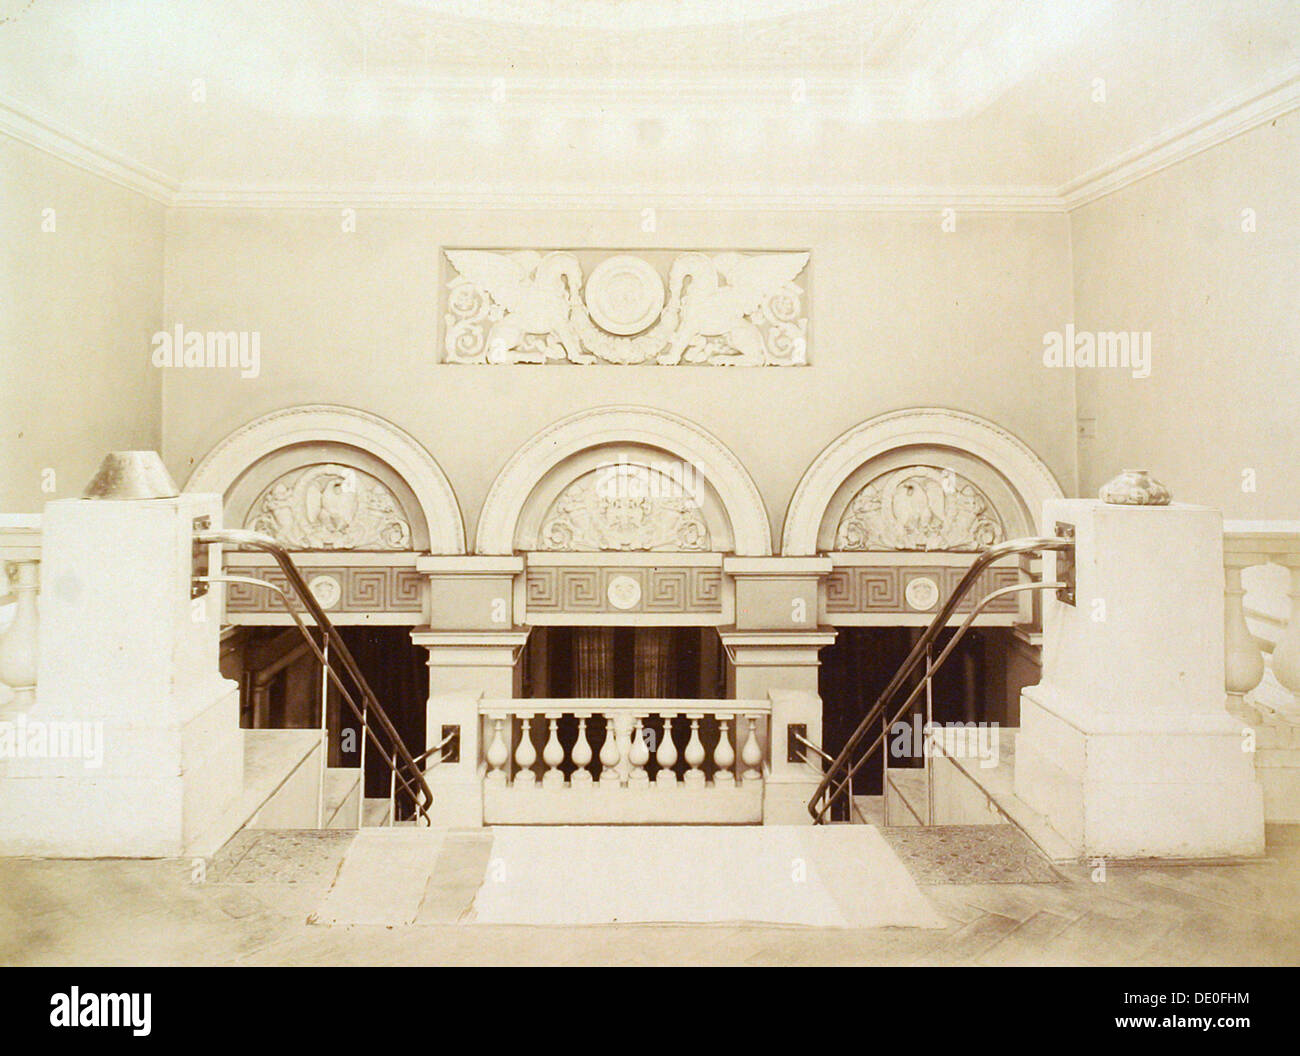 Main staircase, House of the Association of Literature and Arts, Russia, 1900s. - Stock Image